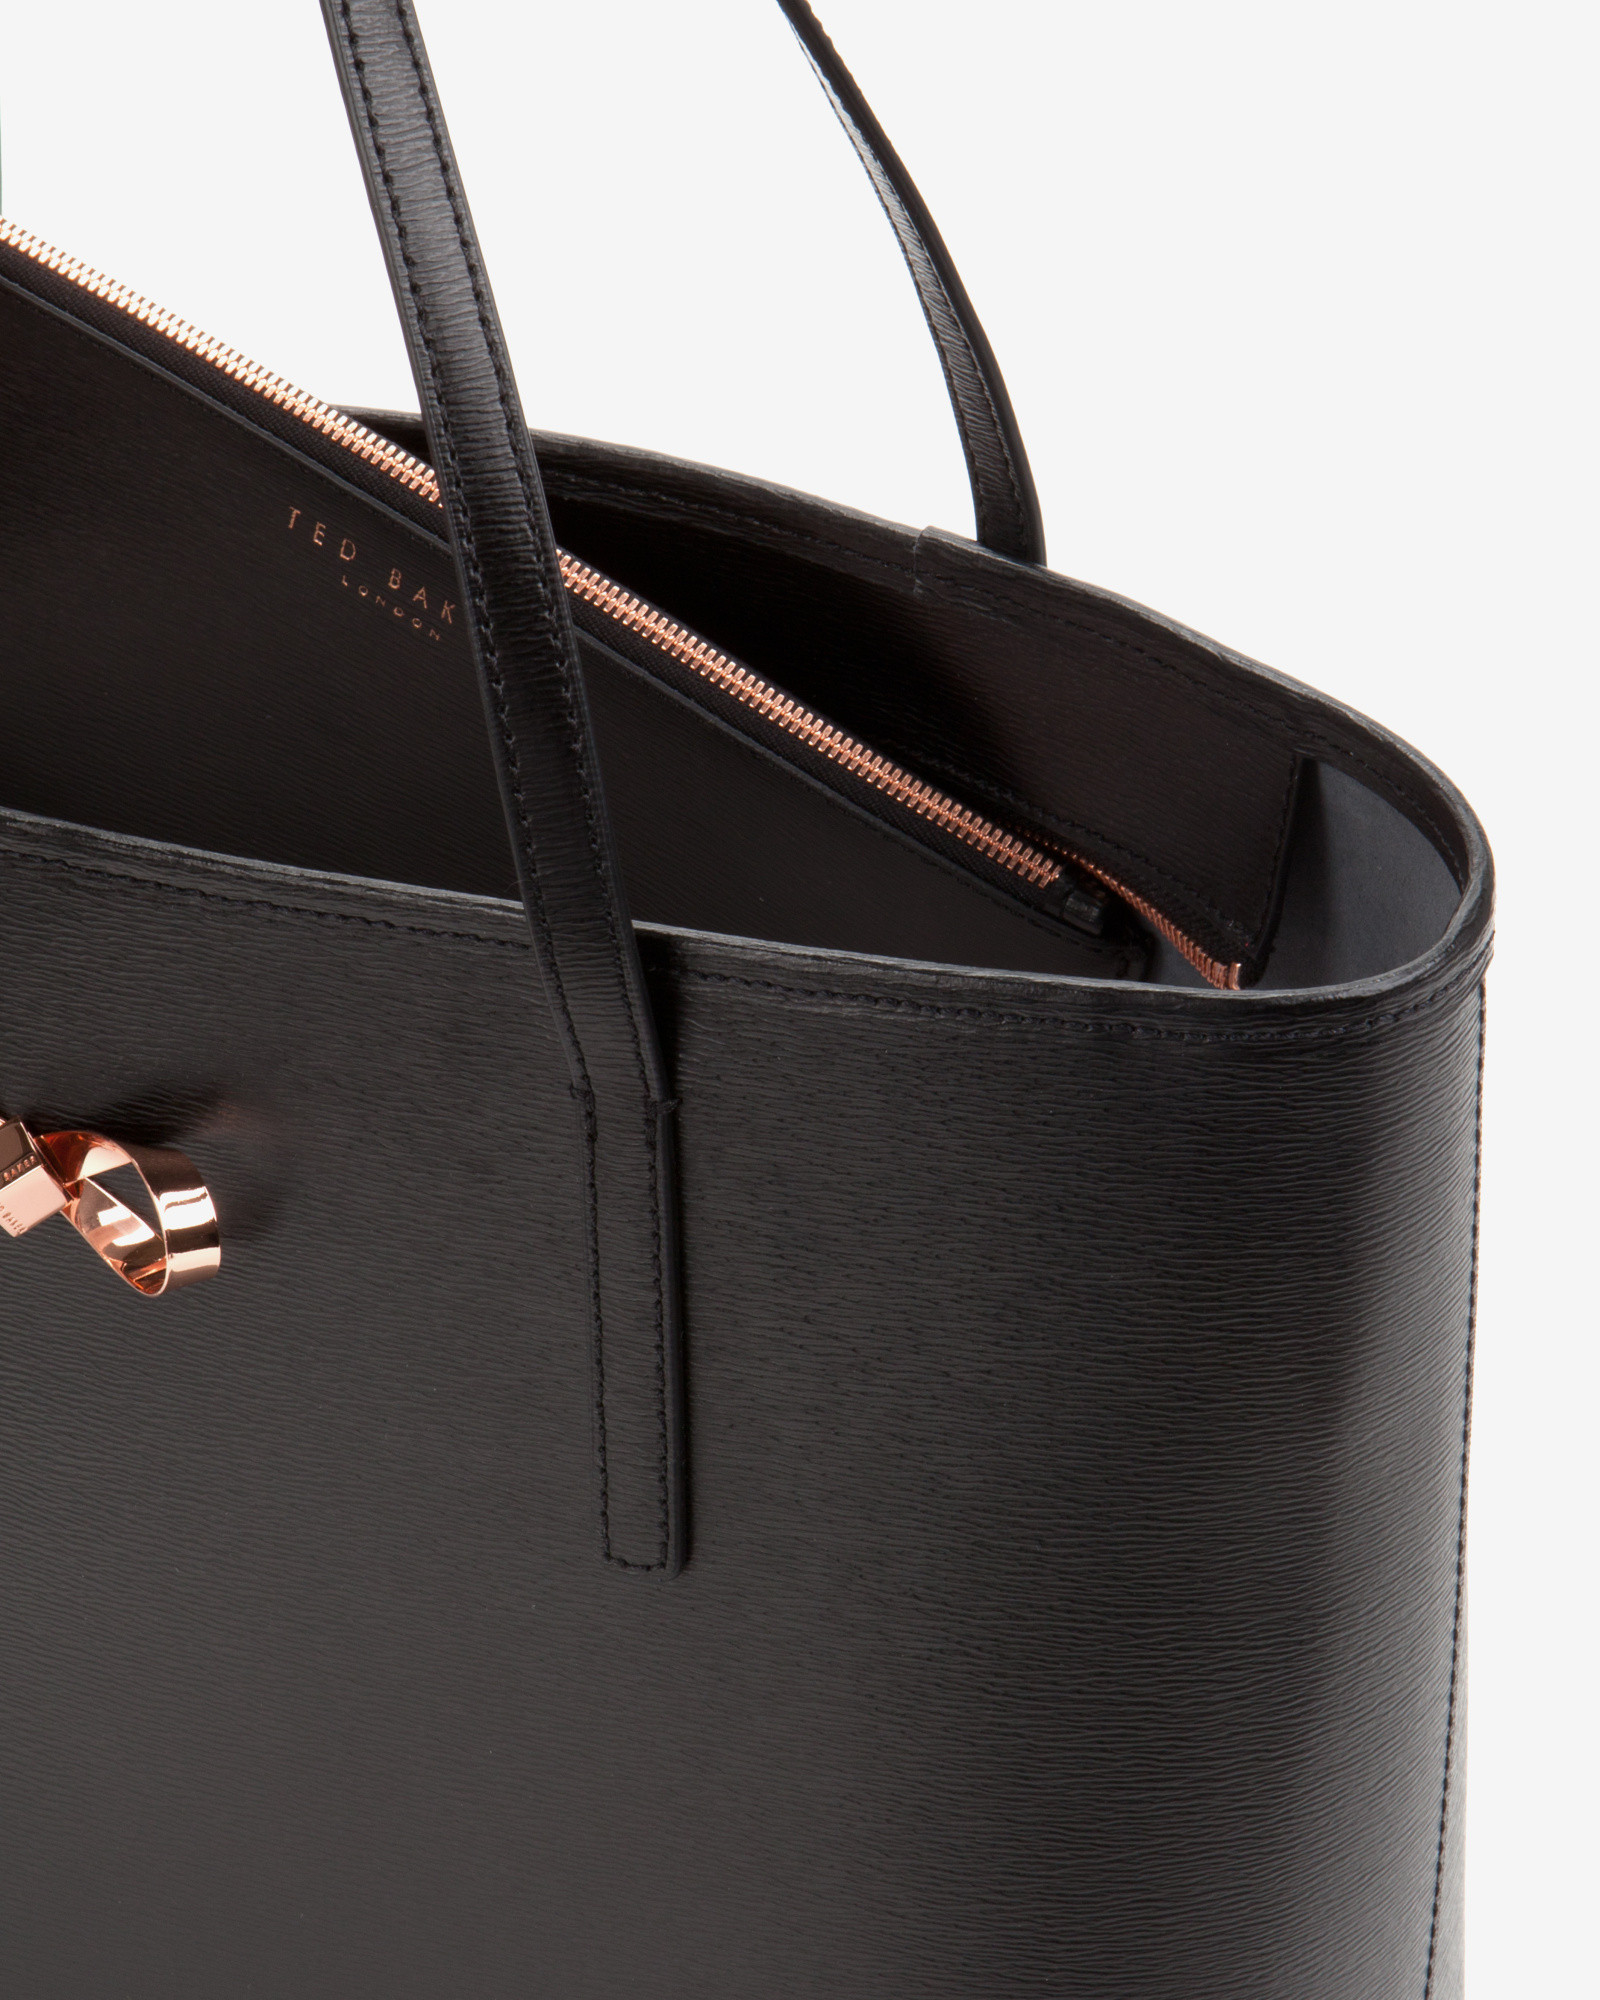 Ted Baker Purse Black And Rose Gold Best Image Ccdbb